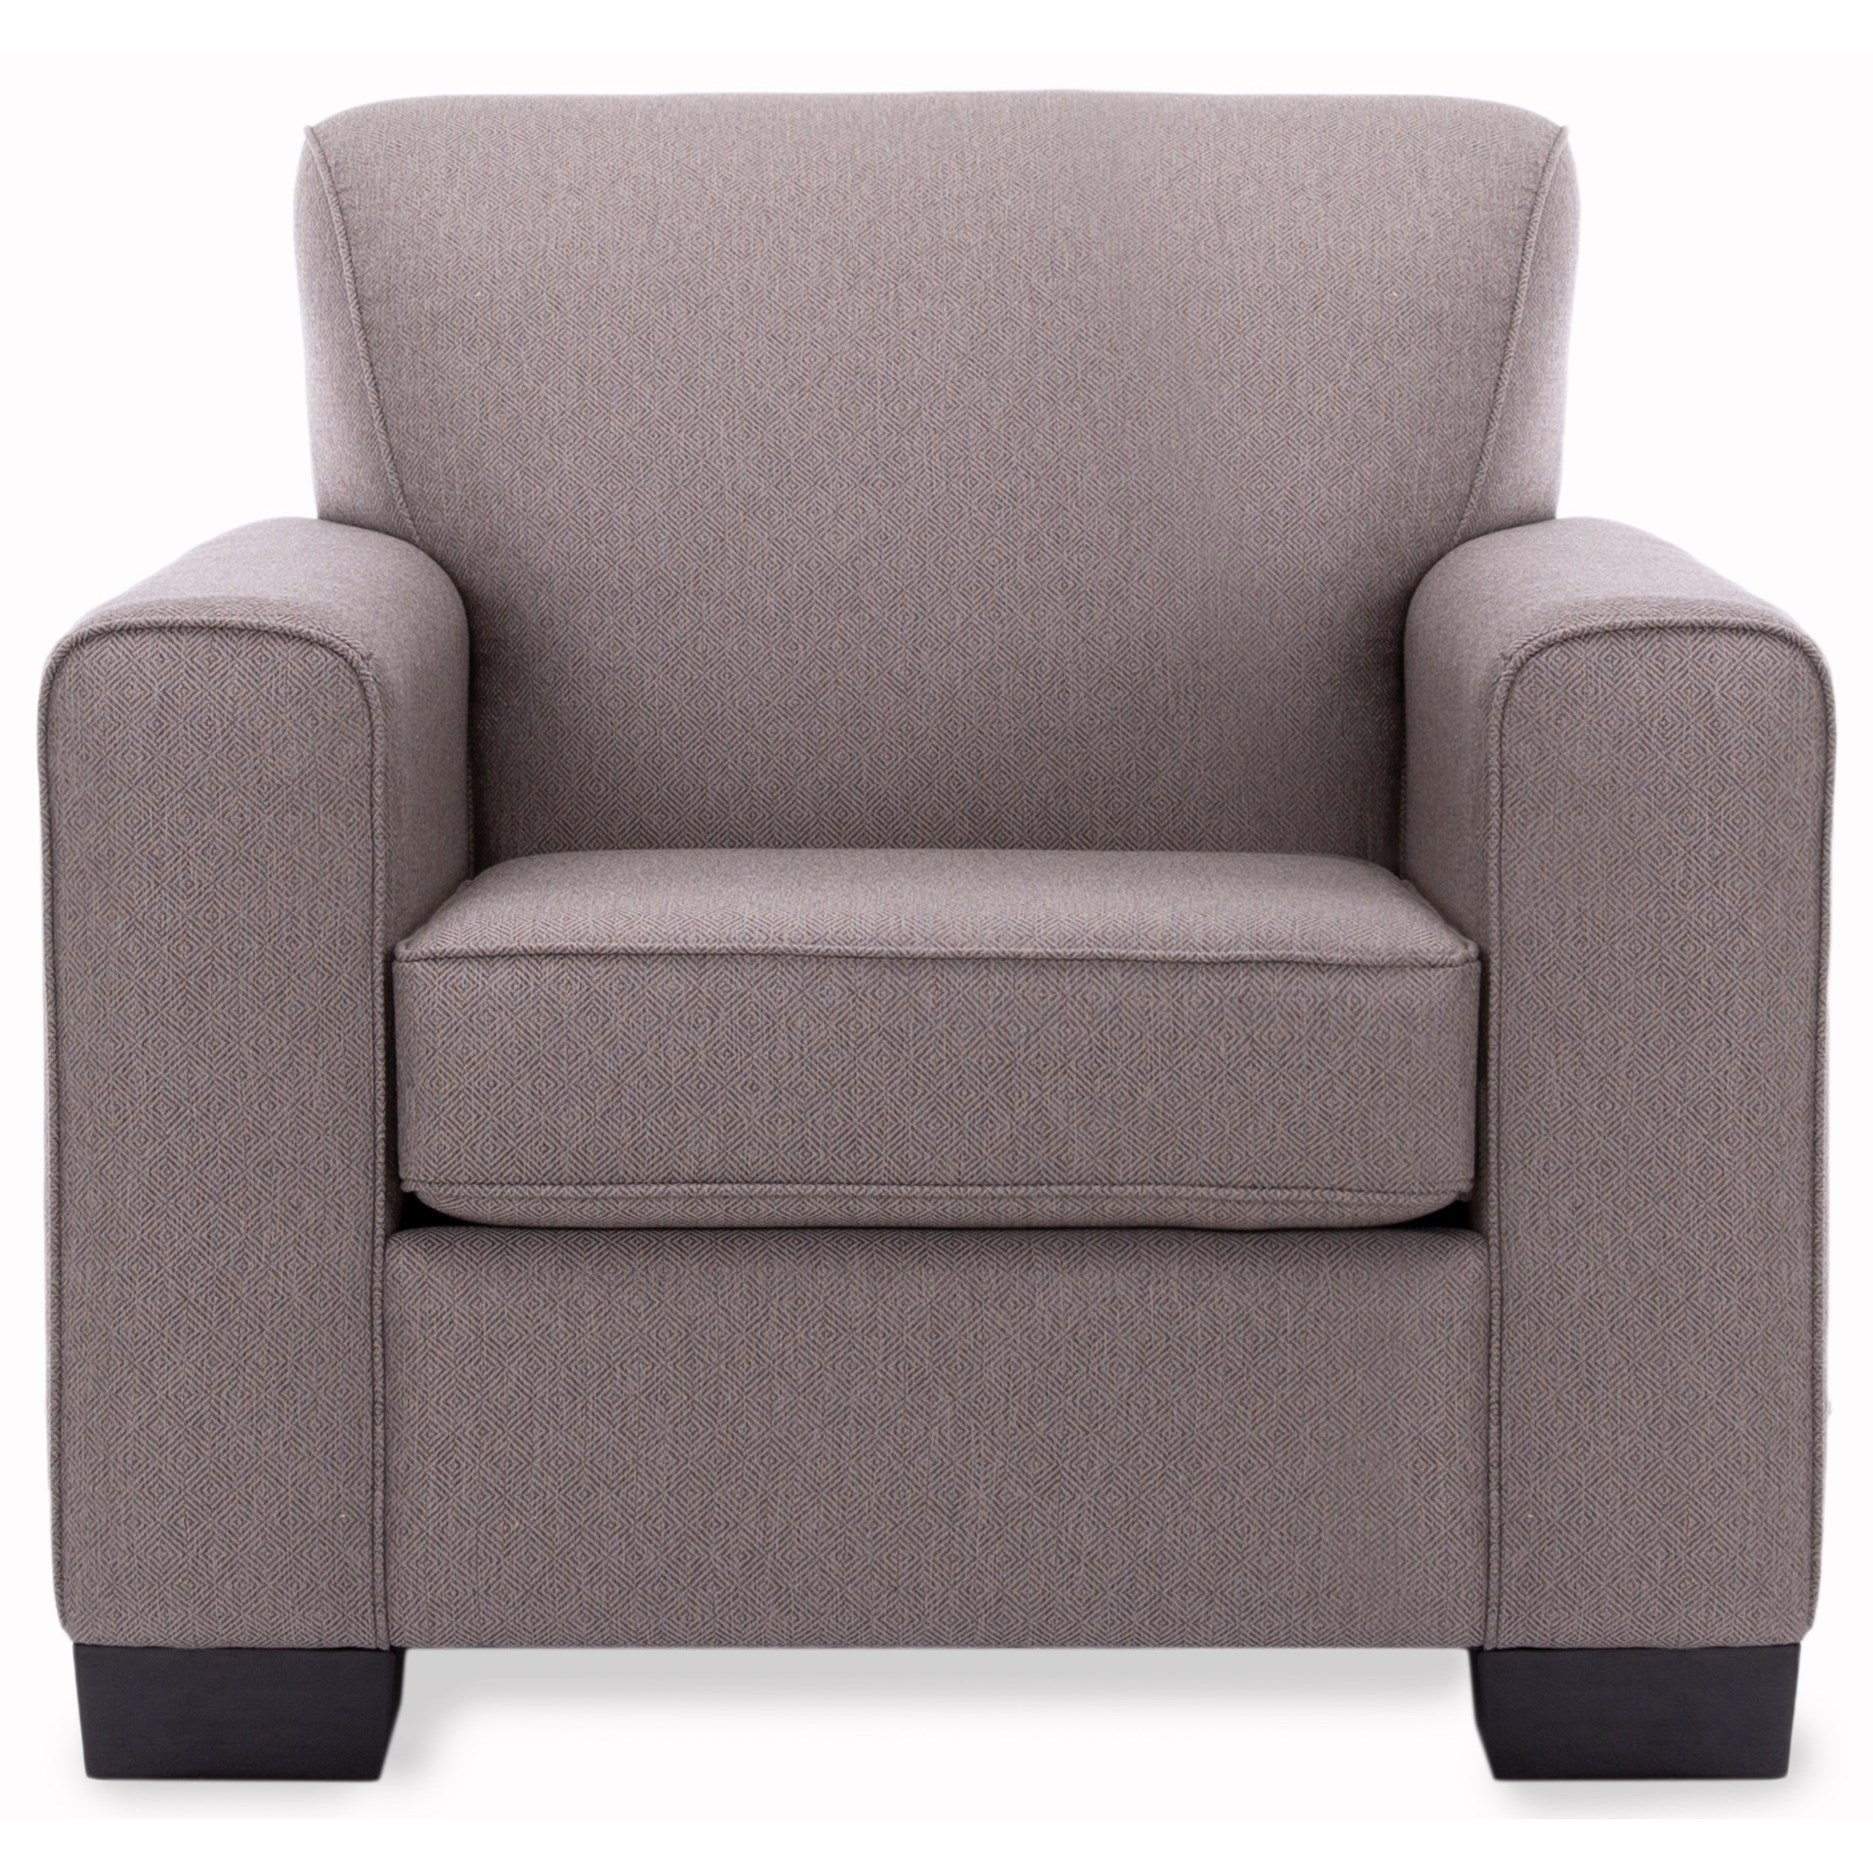 2805 Chair by Decor-Rest at Stoney Creek Furniture